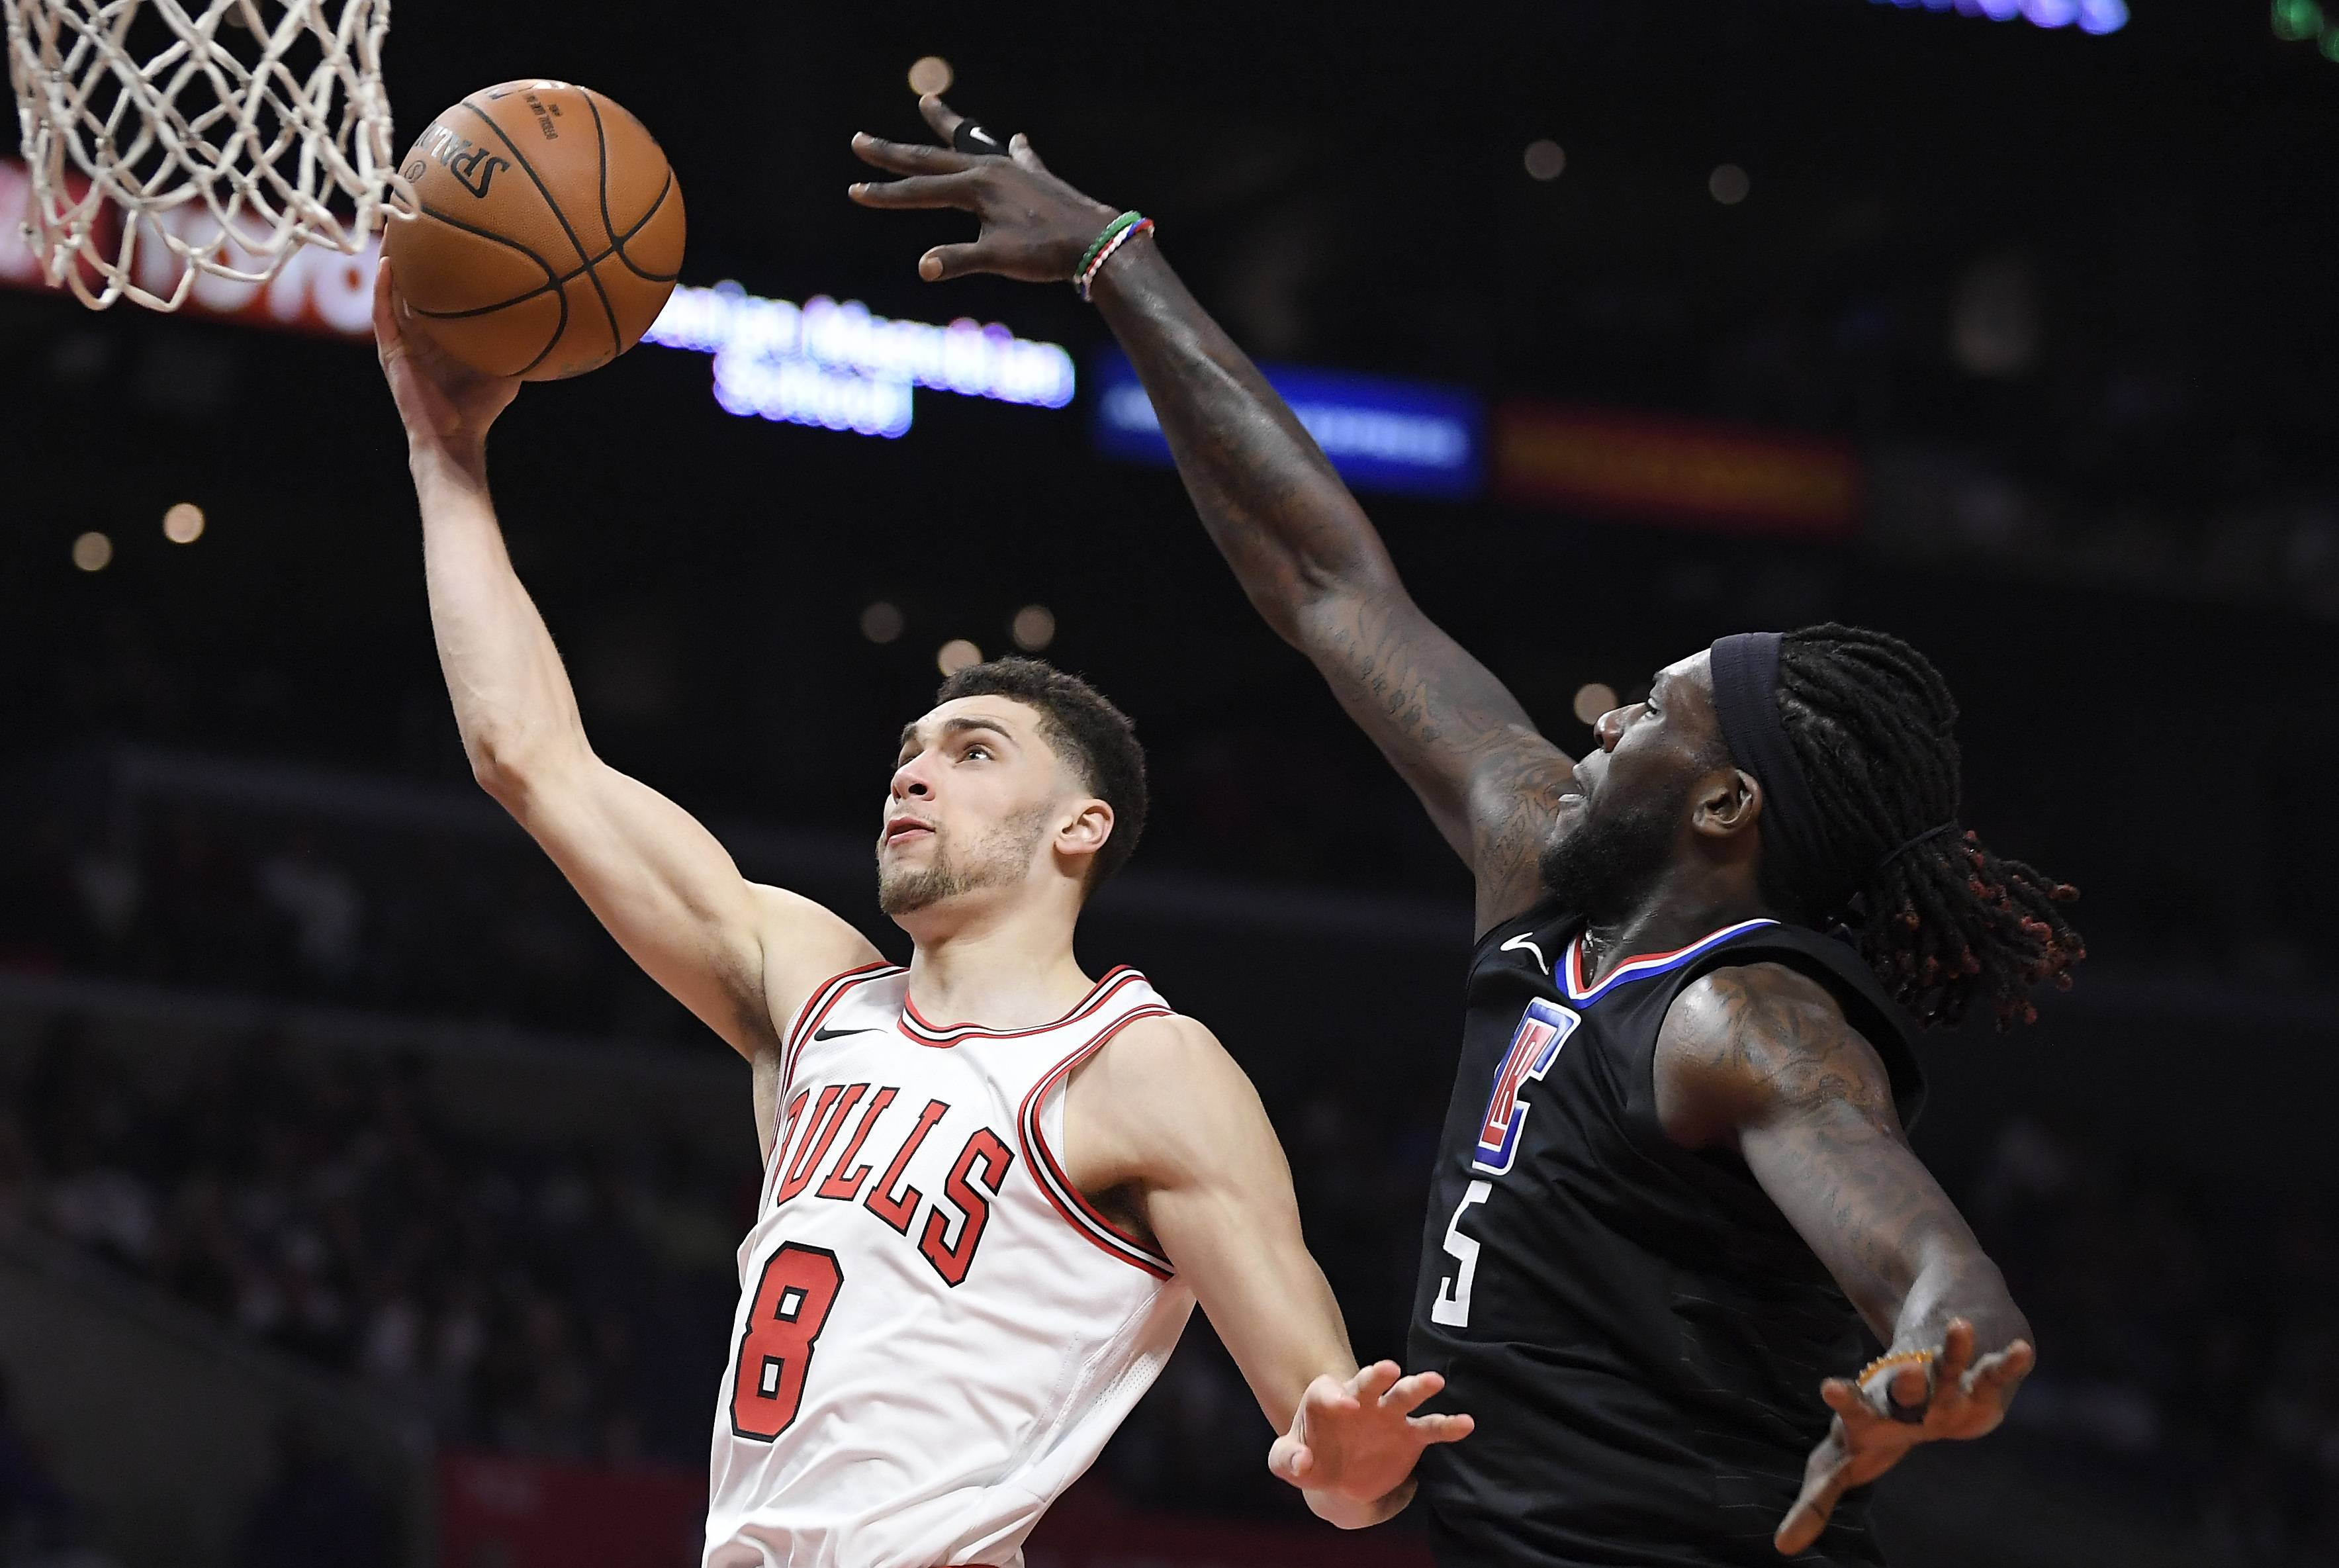 No hard feelings for LaVine heading into matchup with Minnesota